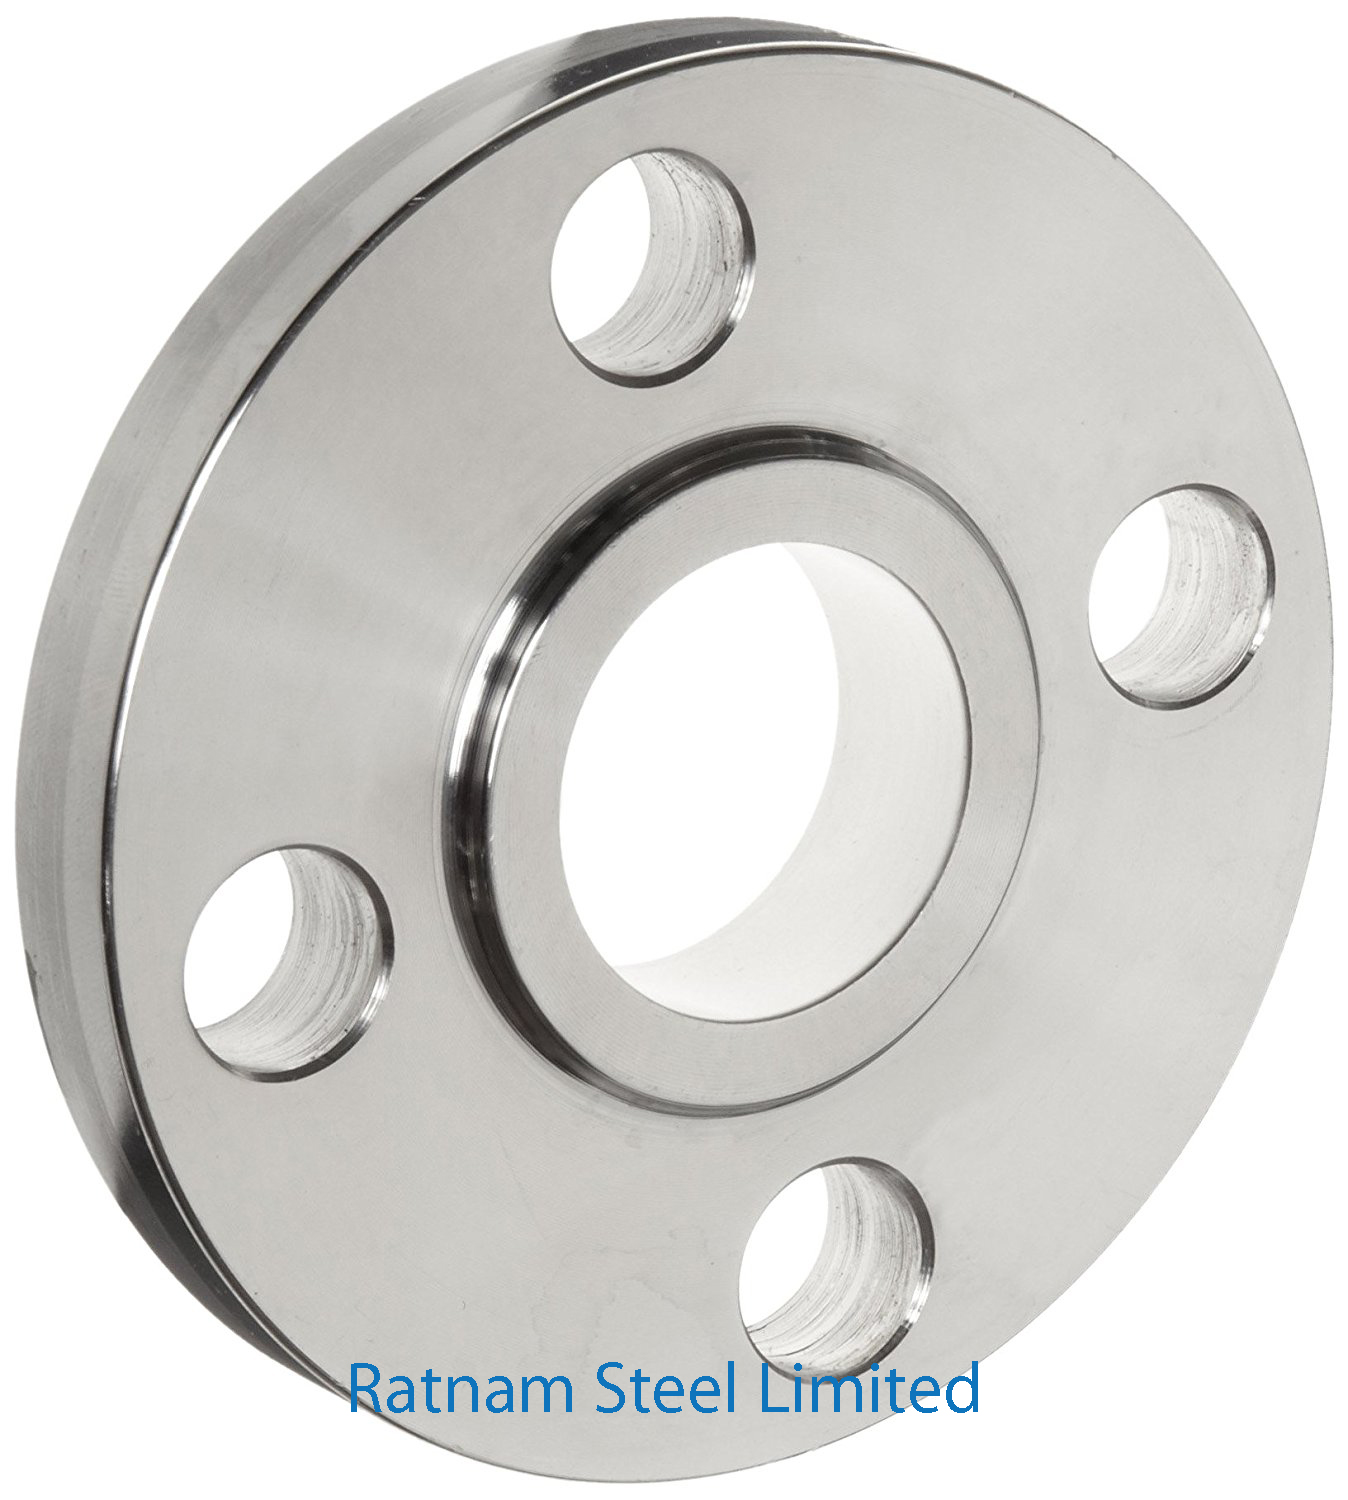 ASTM A403 201 Stainless Steel Flange slip on manufacturer in India